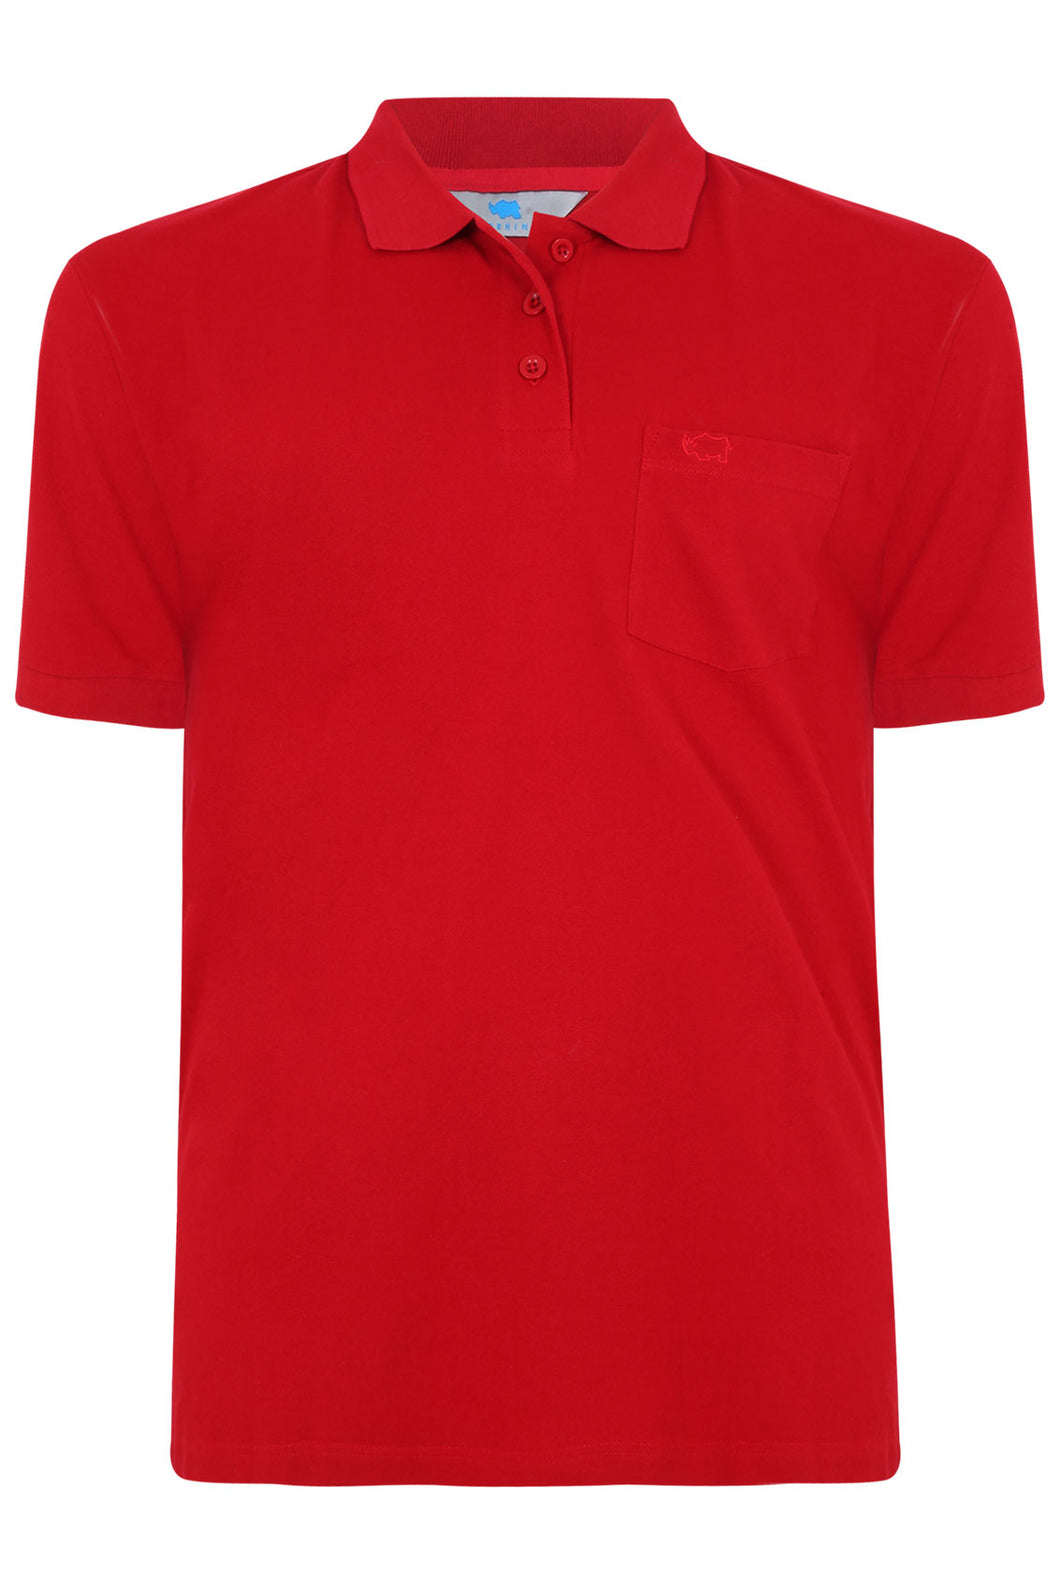 Red Plain Polo Shirt With Chest Pocket